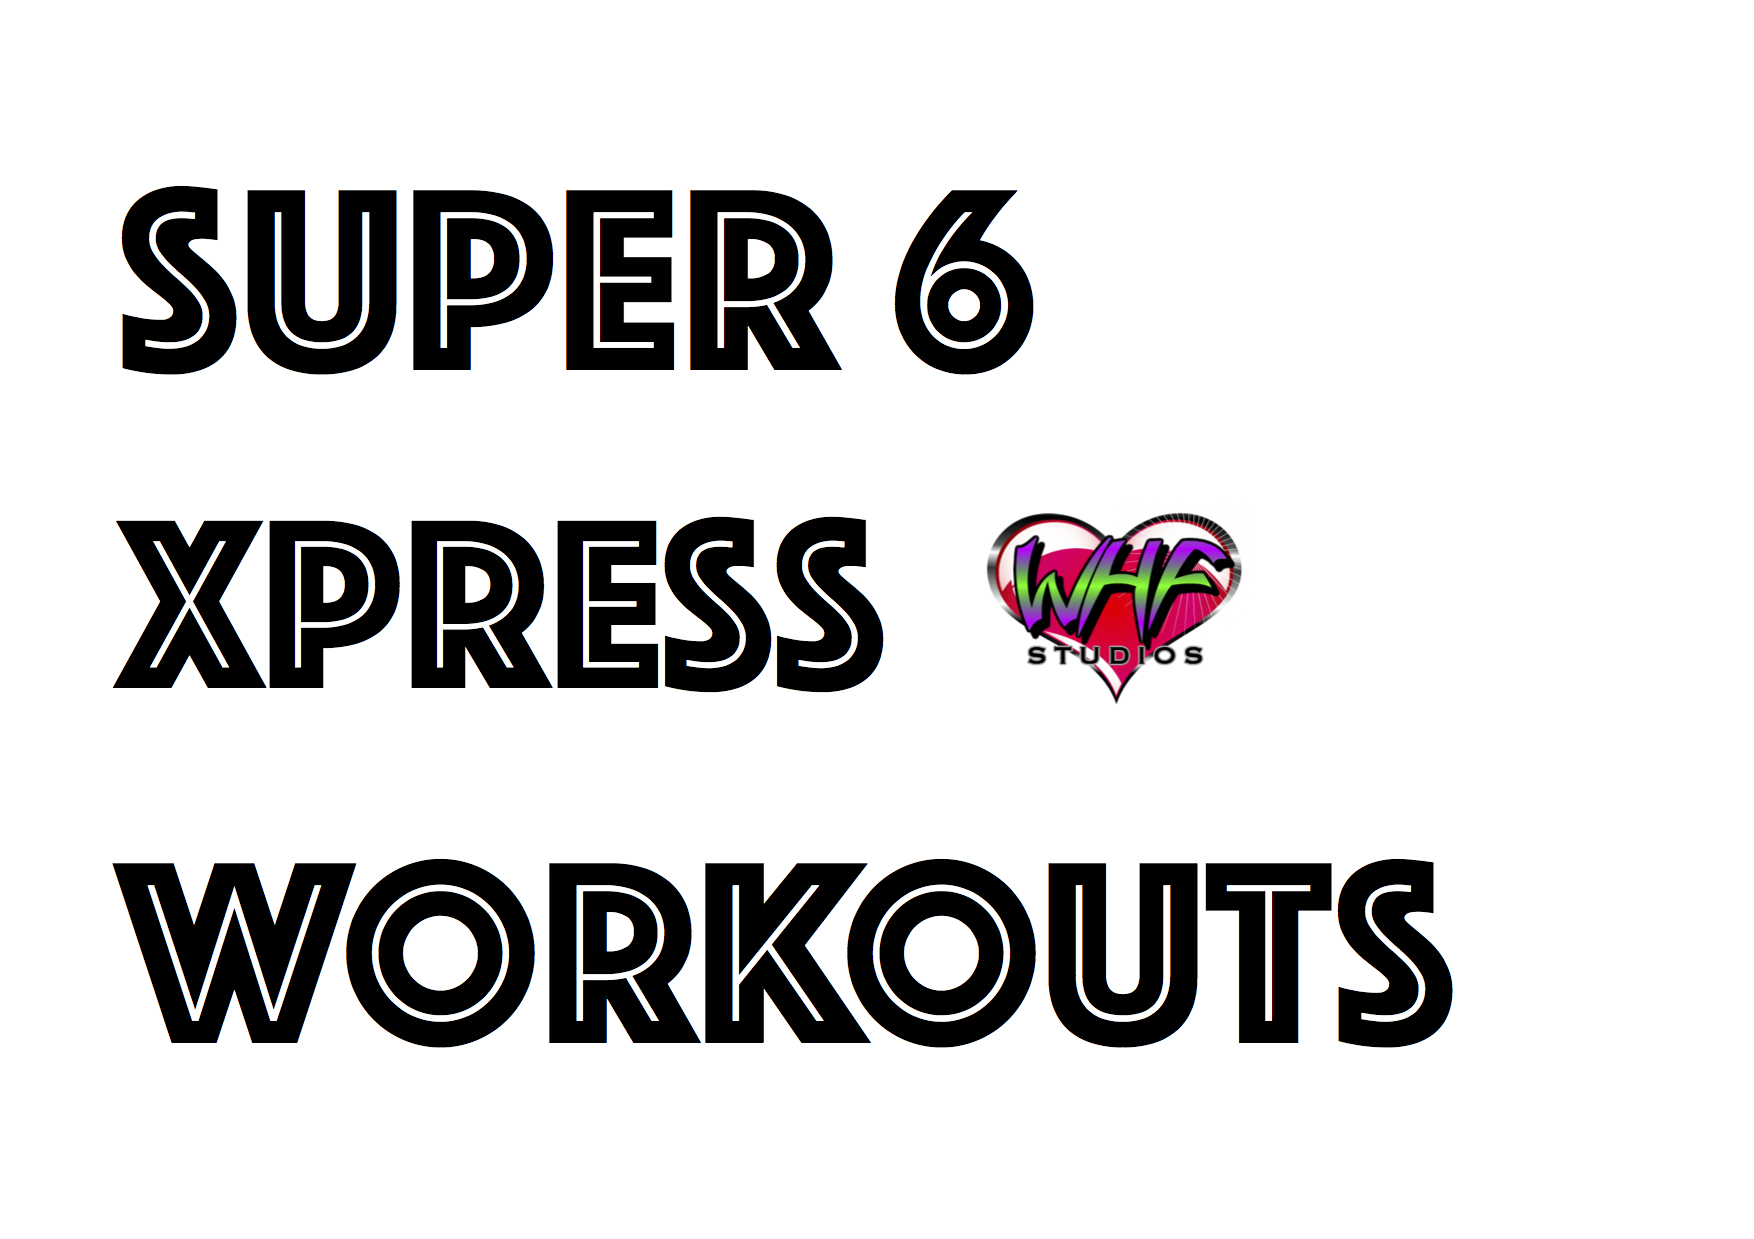 BUY YOUR SUPER 6 XPRESS HOME- WORKOUTS BELOW........